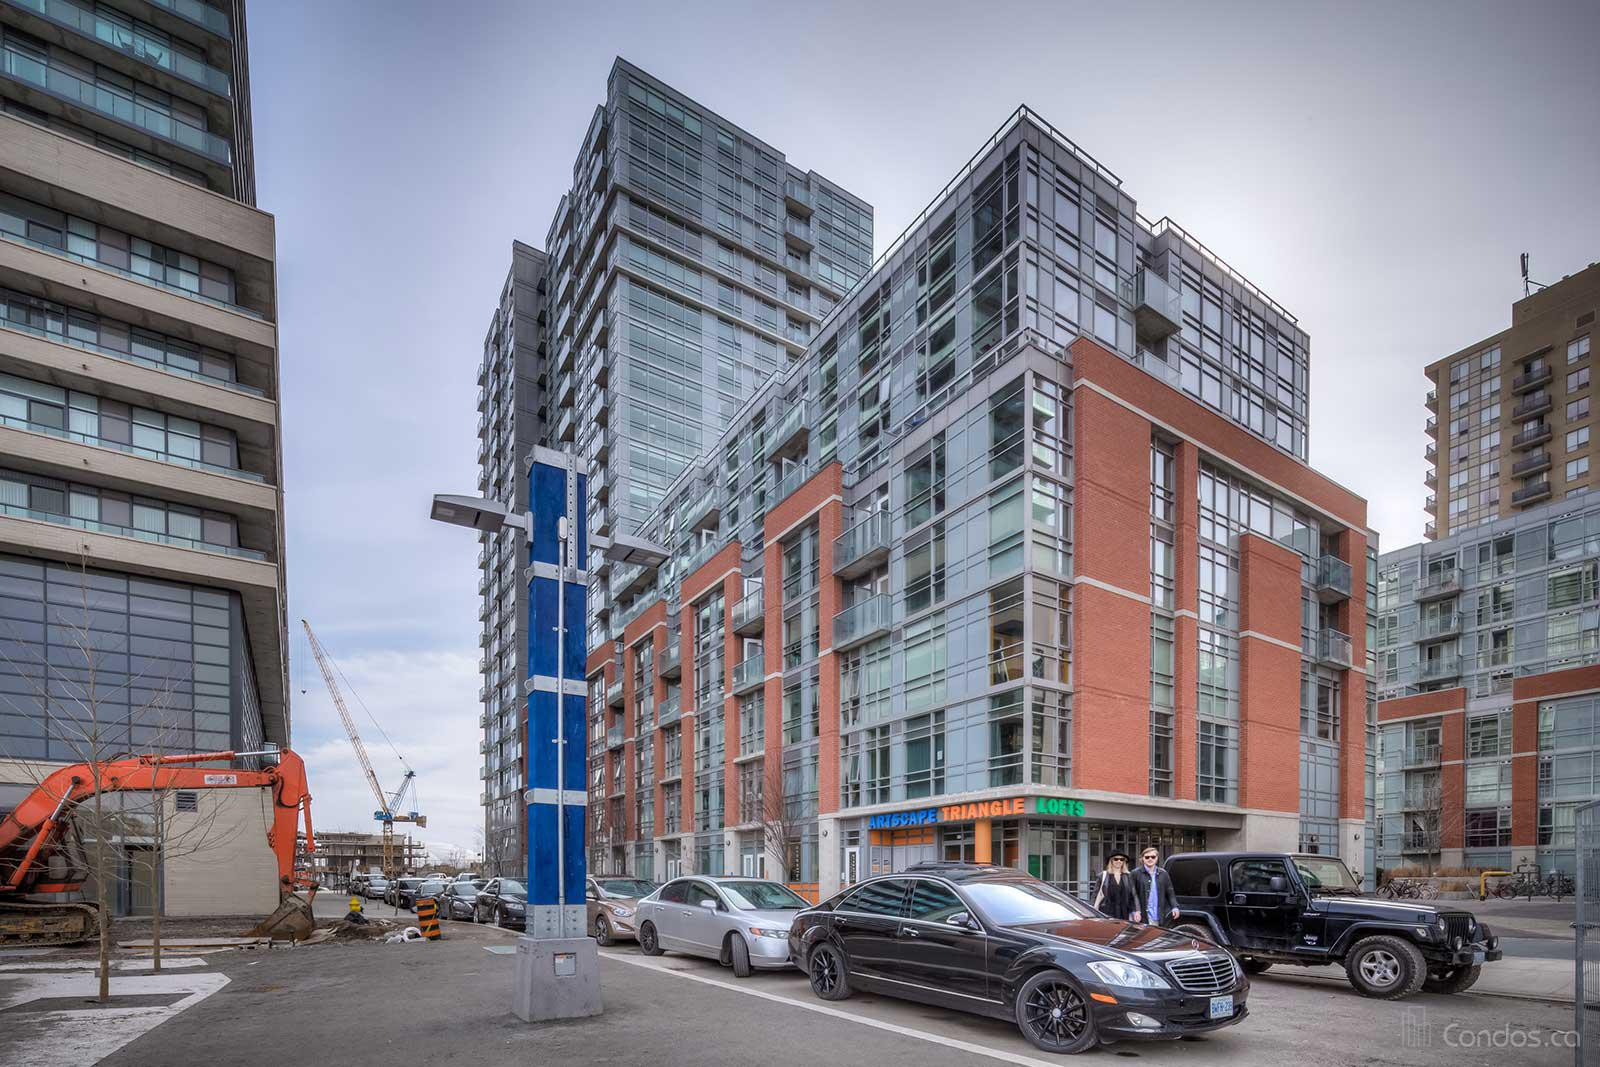 Artscape Triangle Lofts at 32 Abell St, Toronto 1